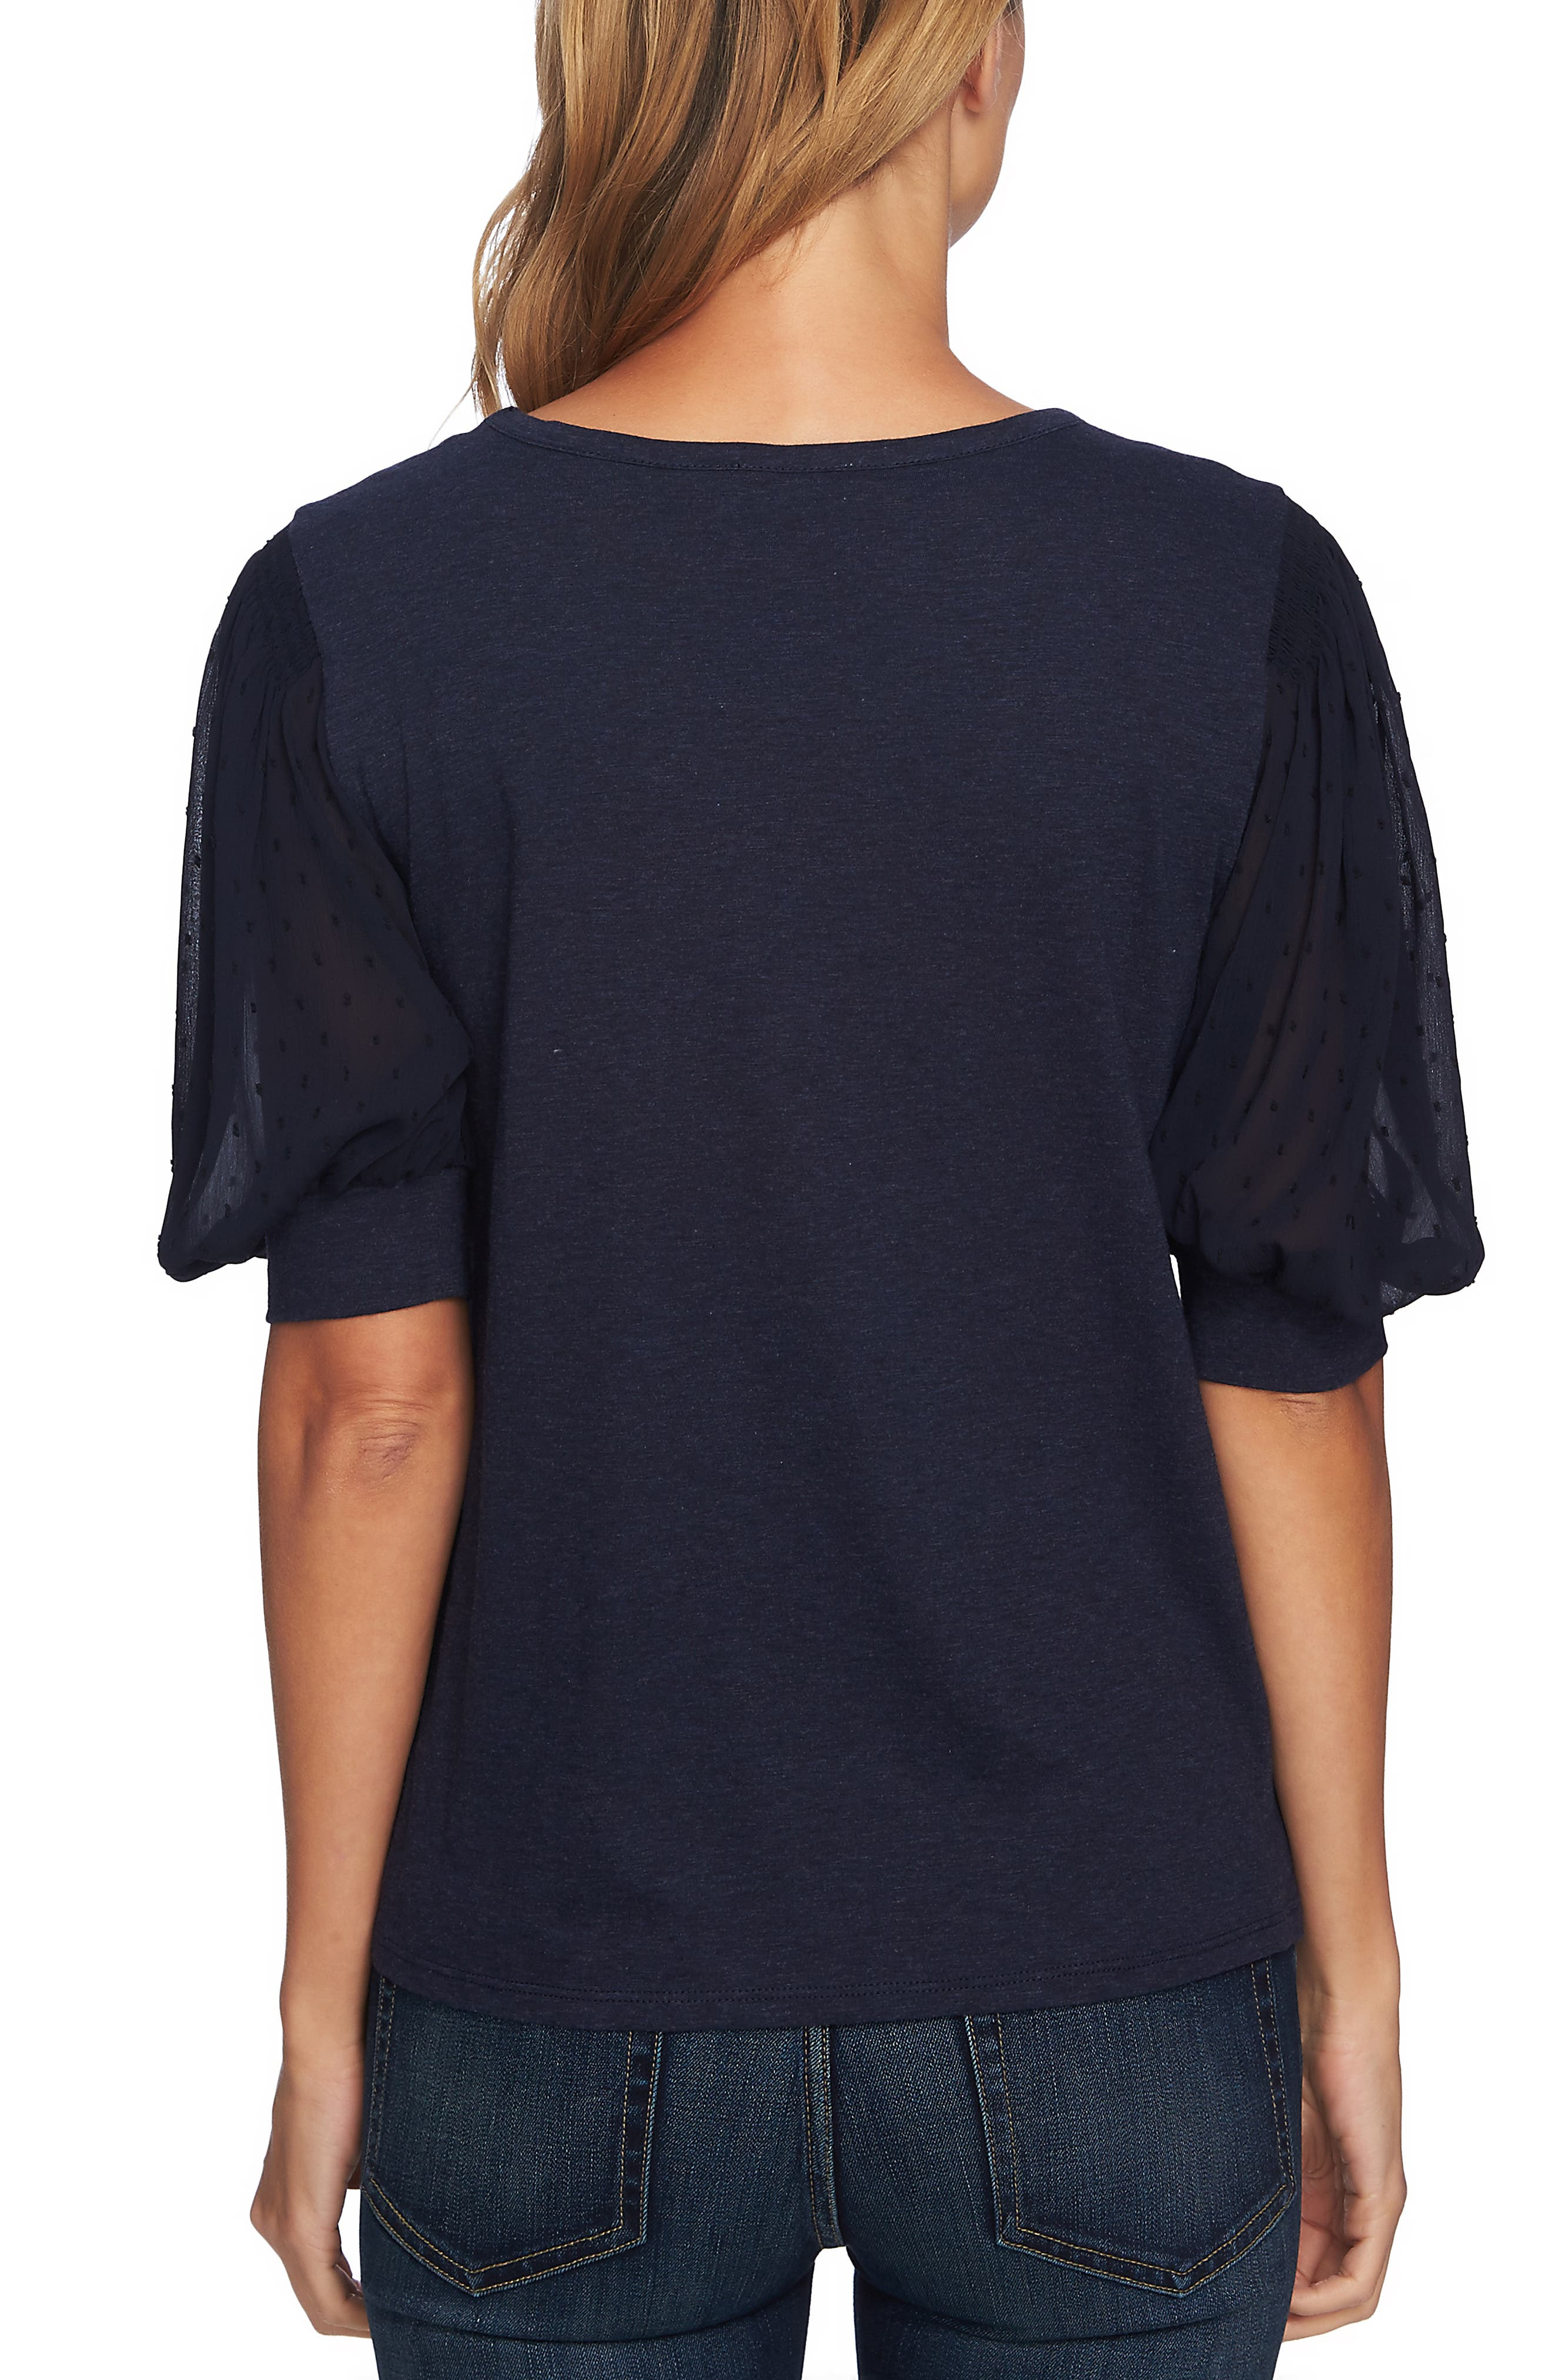 CECE,                             Puffed Sleeve Tee,                             Alternate thumbnail 2, color,                             CAVIAR HEATHER